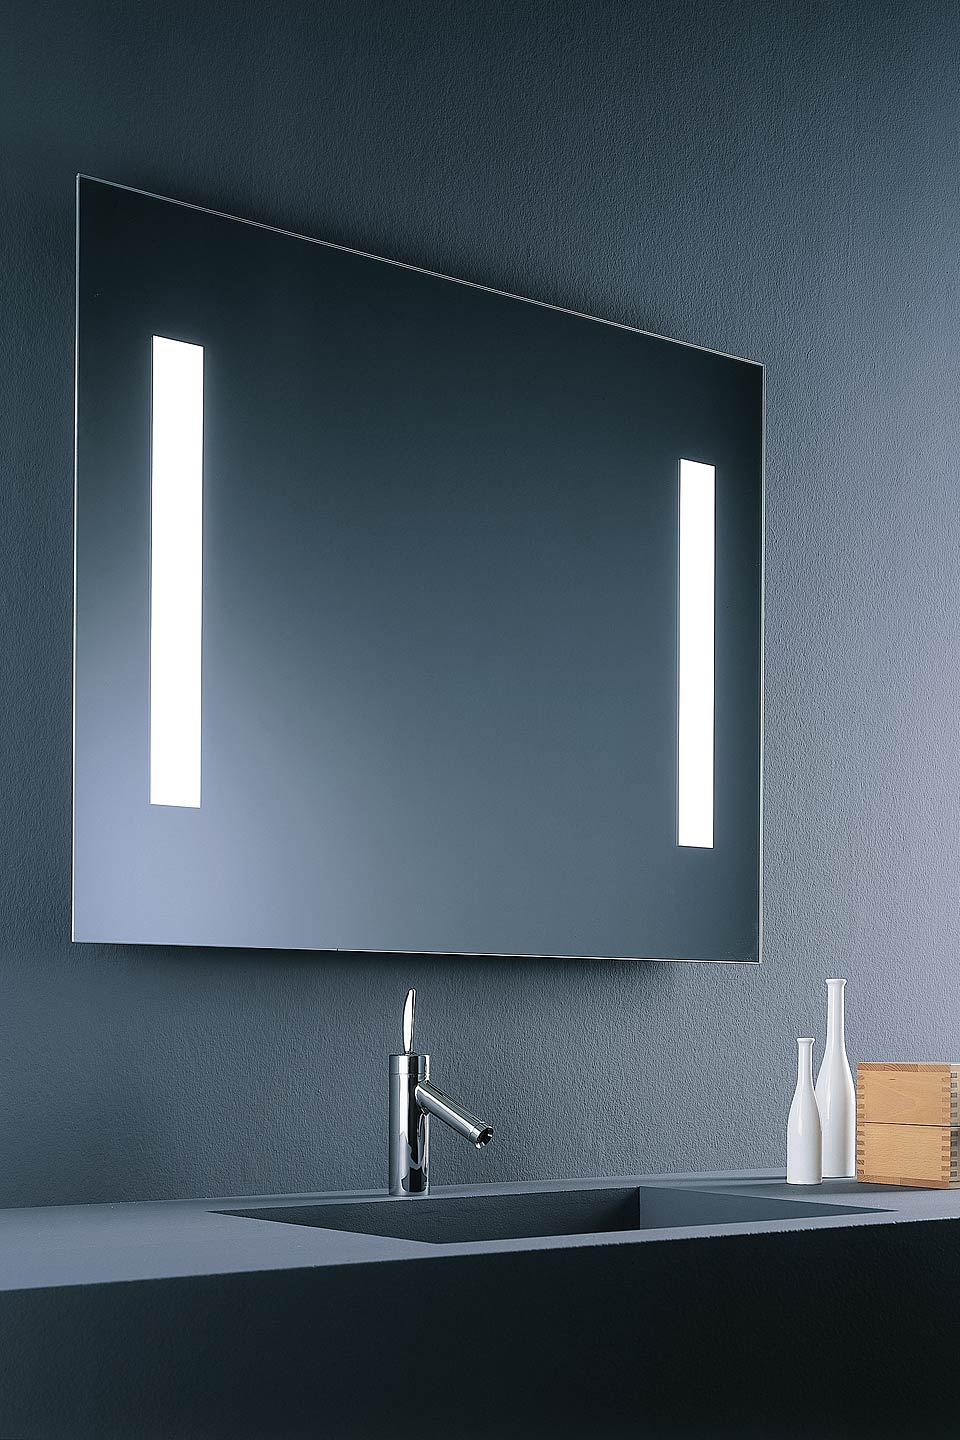 miroir lumineux pour salle de bain maison design. Black Bedroom Furniture Sets. Home Design Ideas